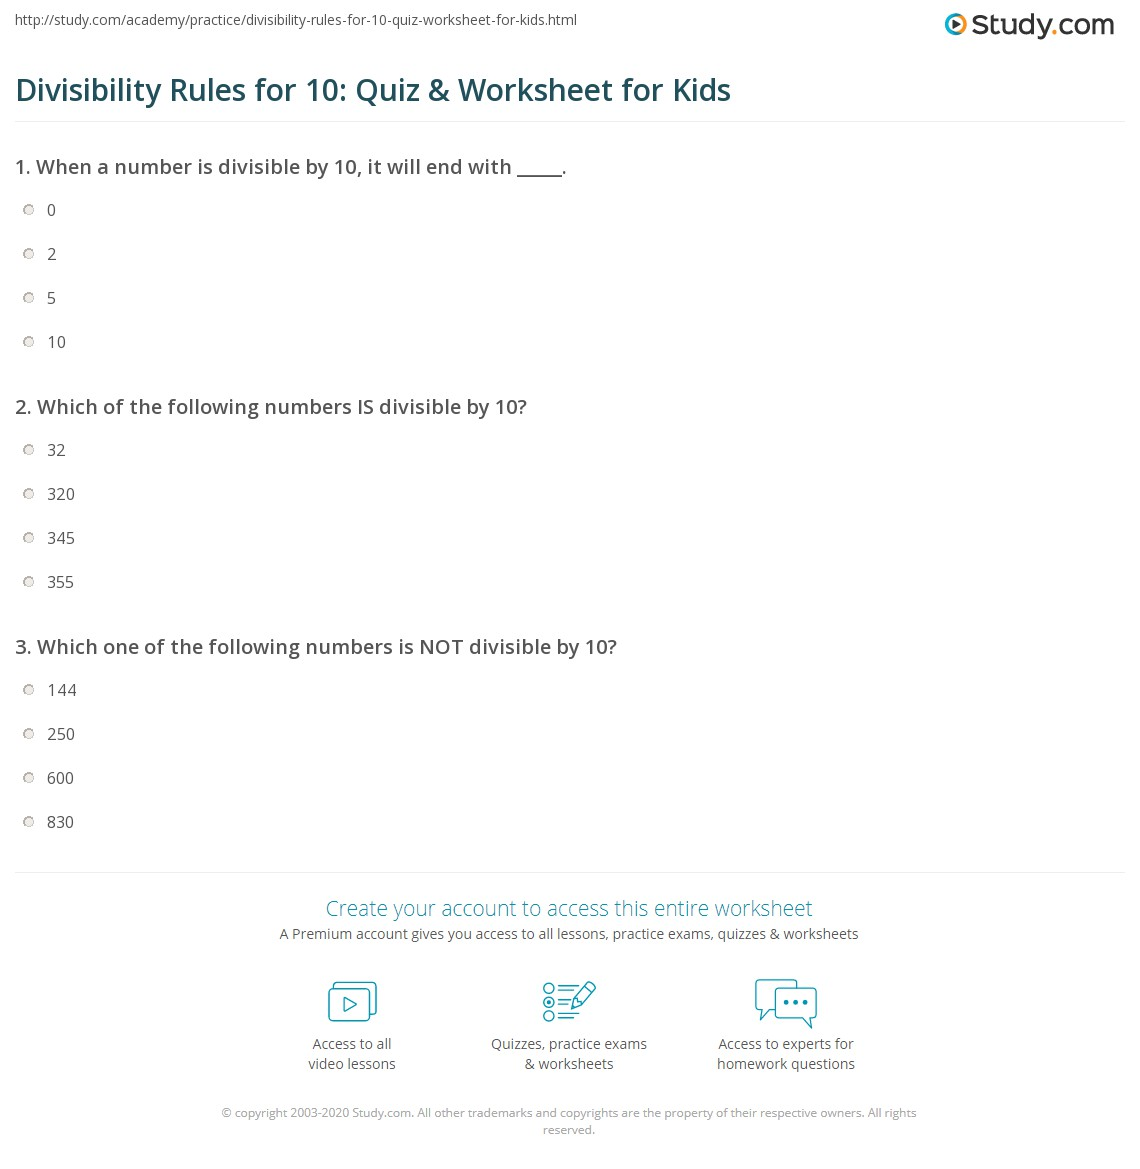 photo regarding Divisibility Rules Printable known as Divisibility Guidelines for 10: Quiz Worksheet for Children